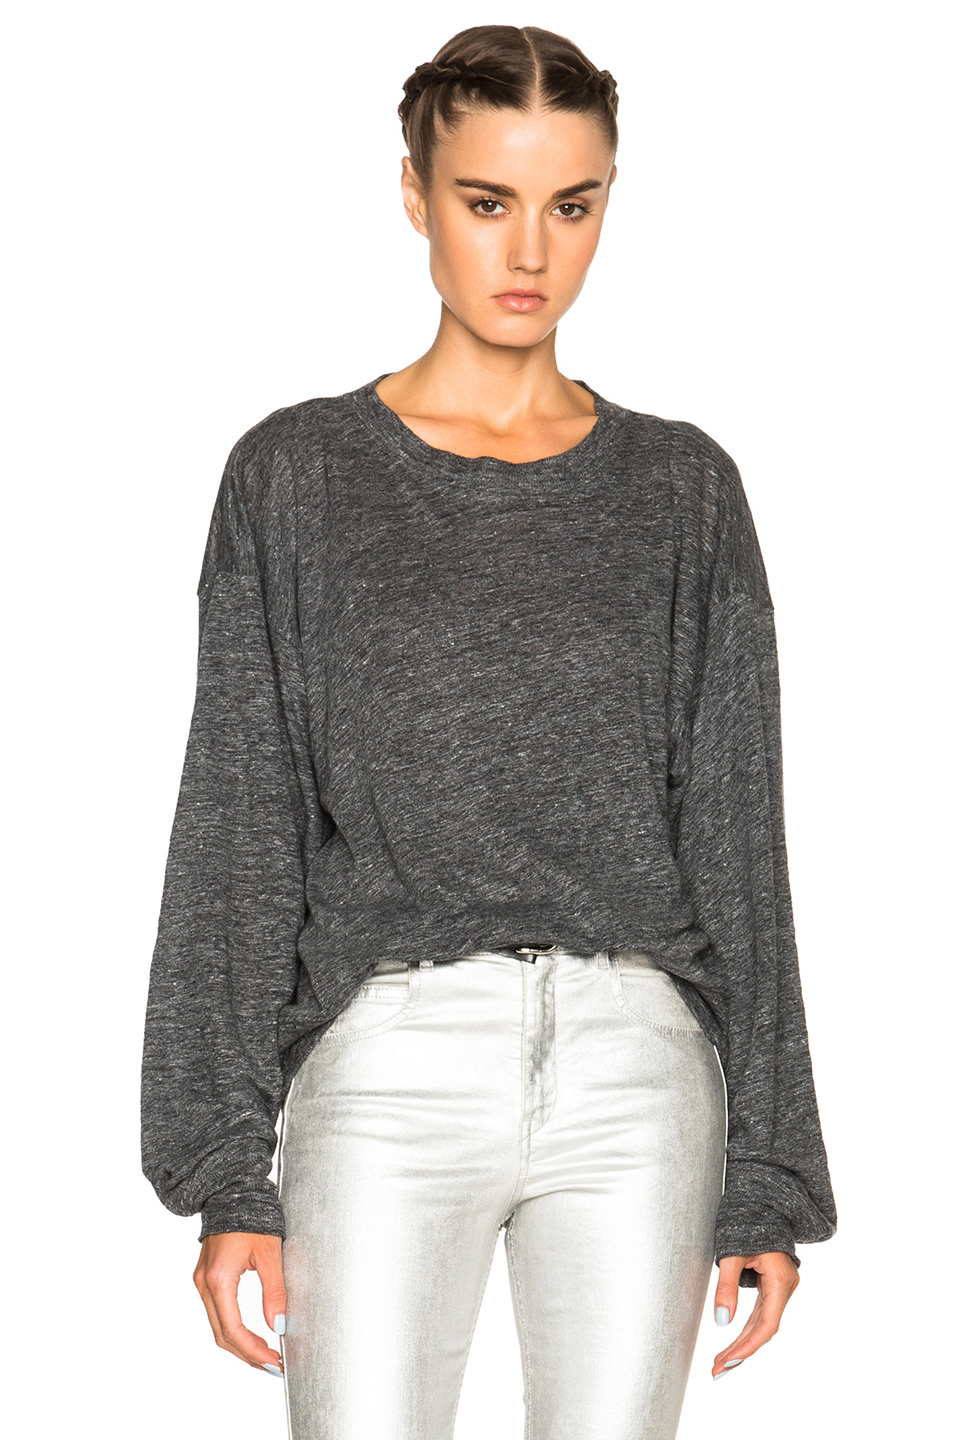 Toile isabel marant klow linen tee in gray lyst for Isabel marant t shirt sale